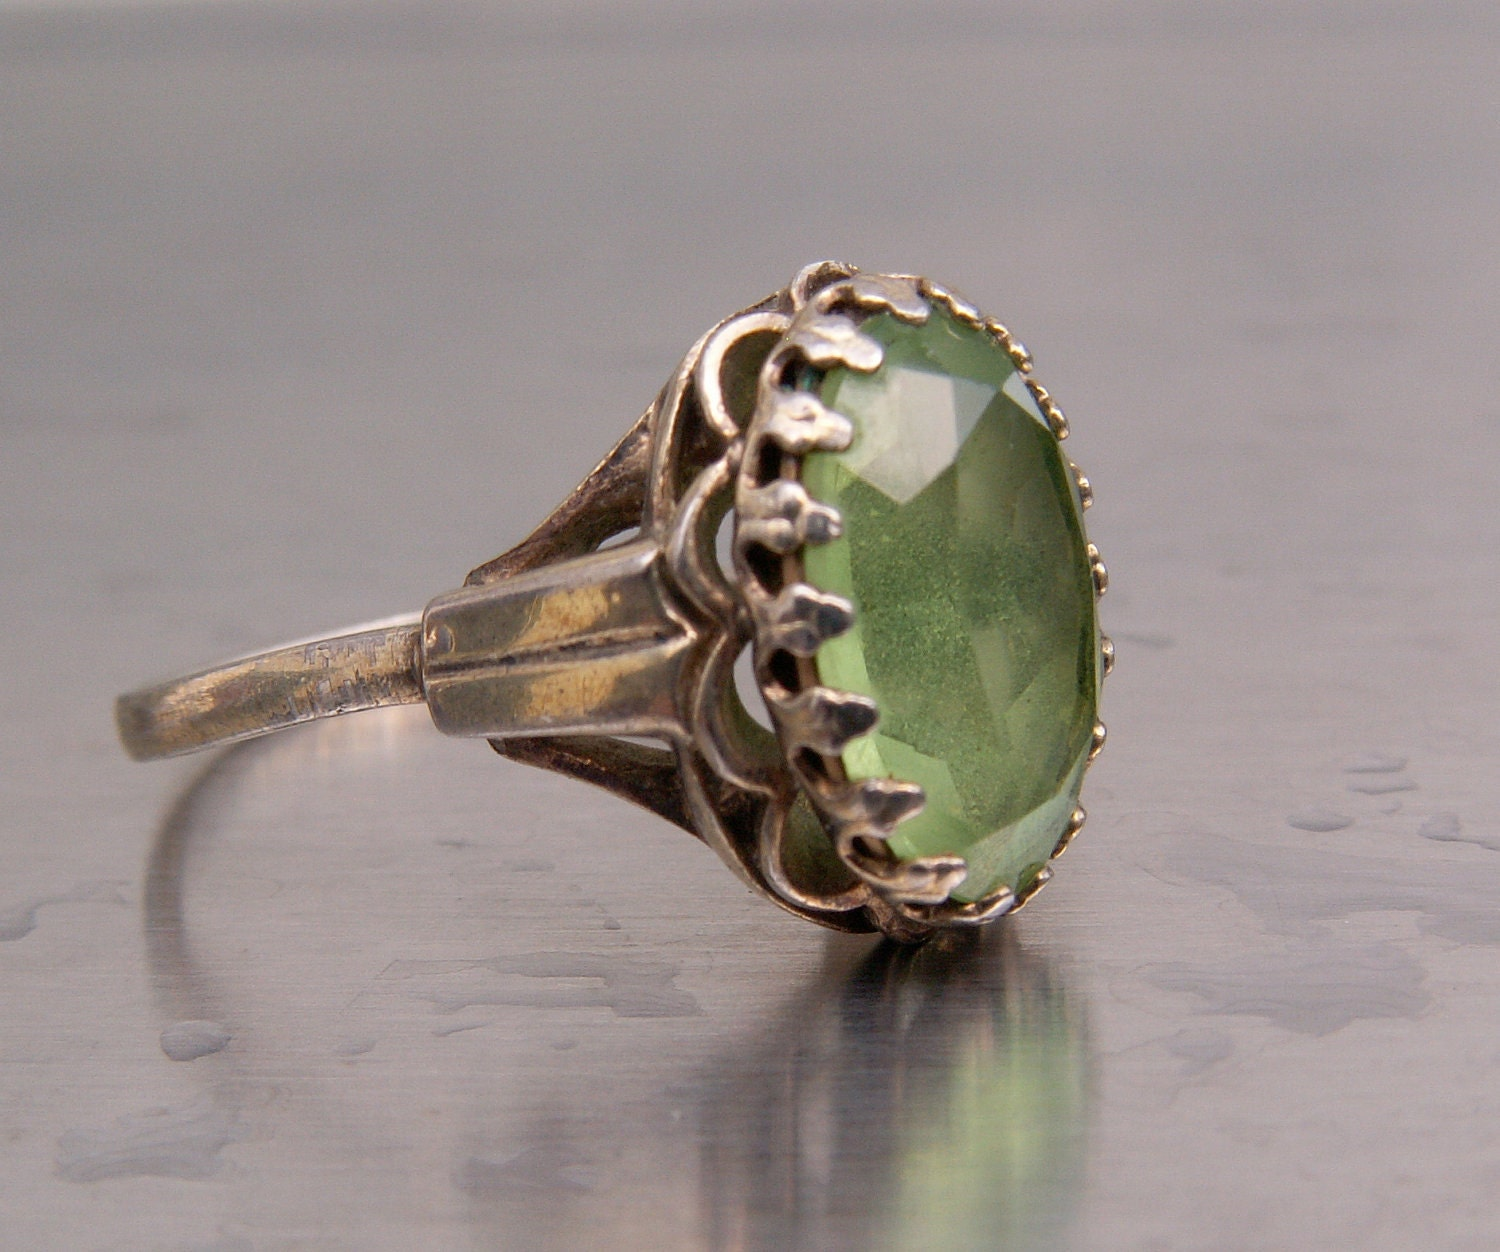 Antique Ring Vintage Glass Peridot Green Color Stone Sterling Silver Size 7 1960s Victorian Art Nouveau Look August Birthstone - TheJewelryChain